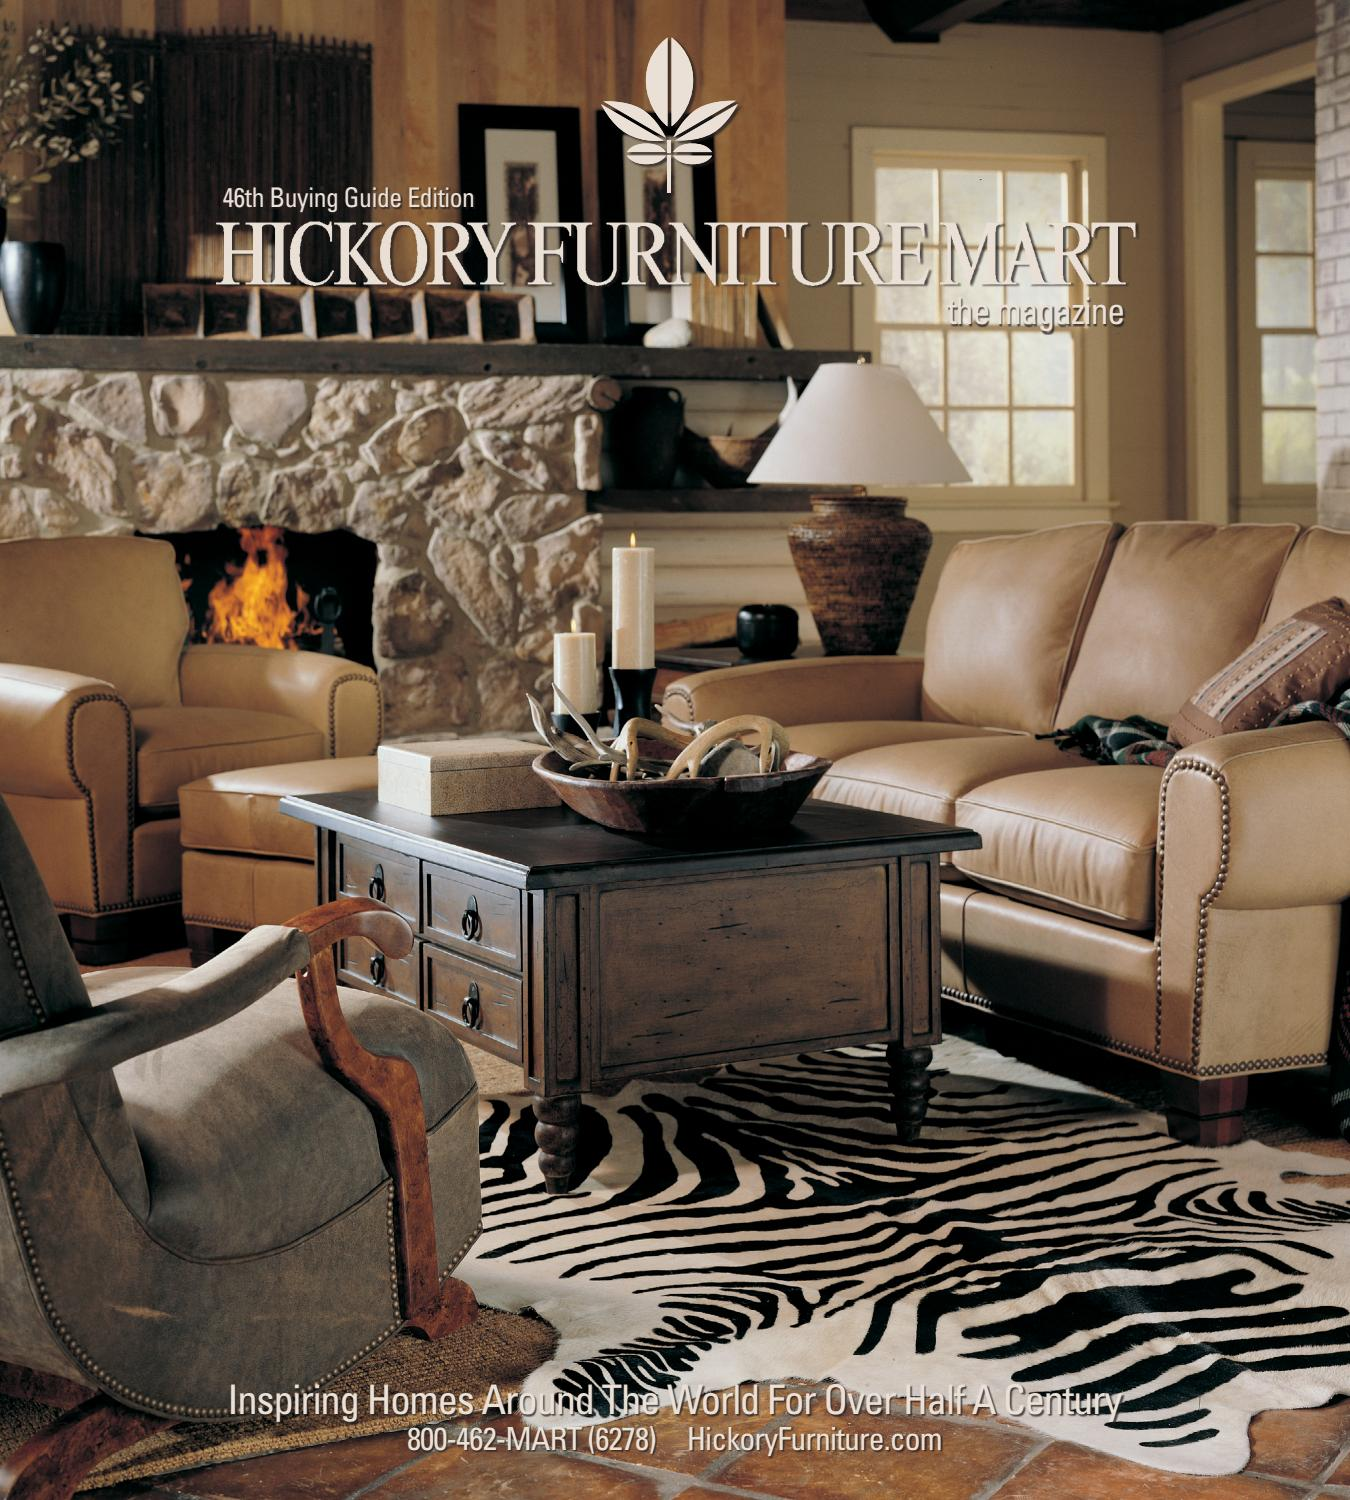 Sofa Express Pineville Nc Hickory Furniture Mart Buying Guide 2018 By Hickory Furniture Mart